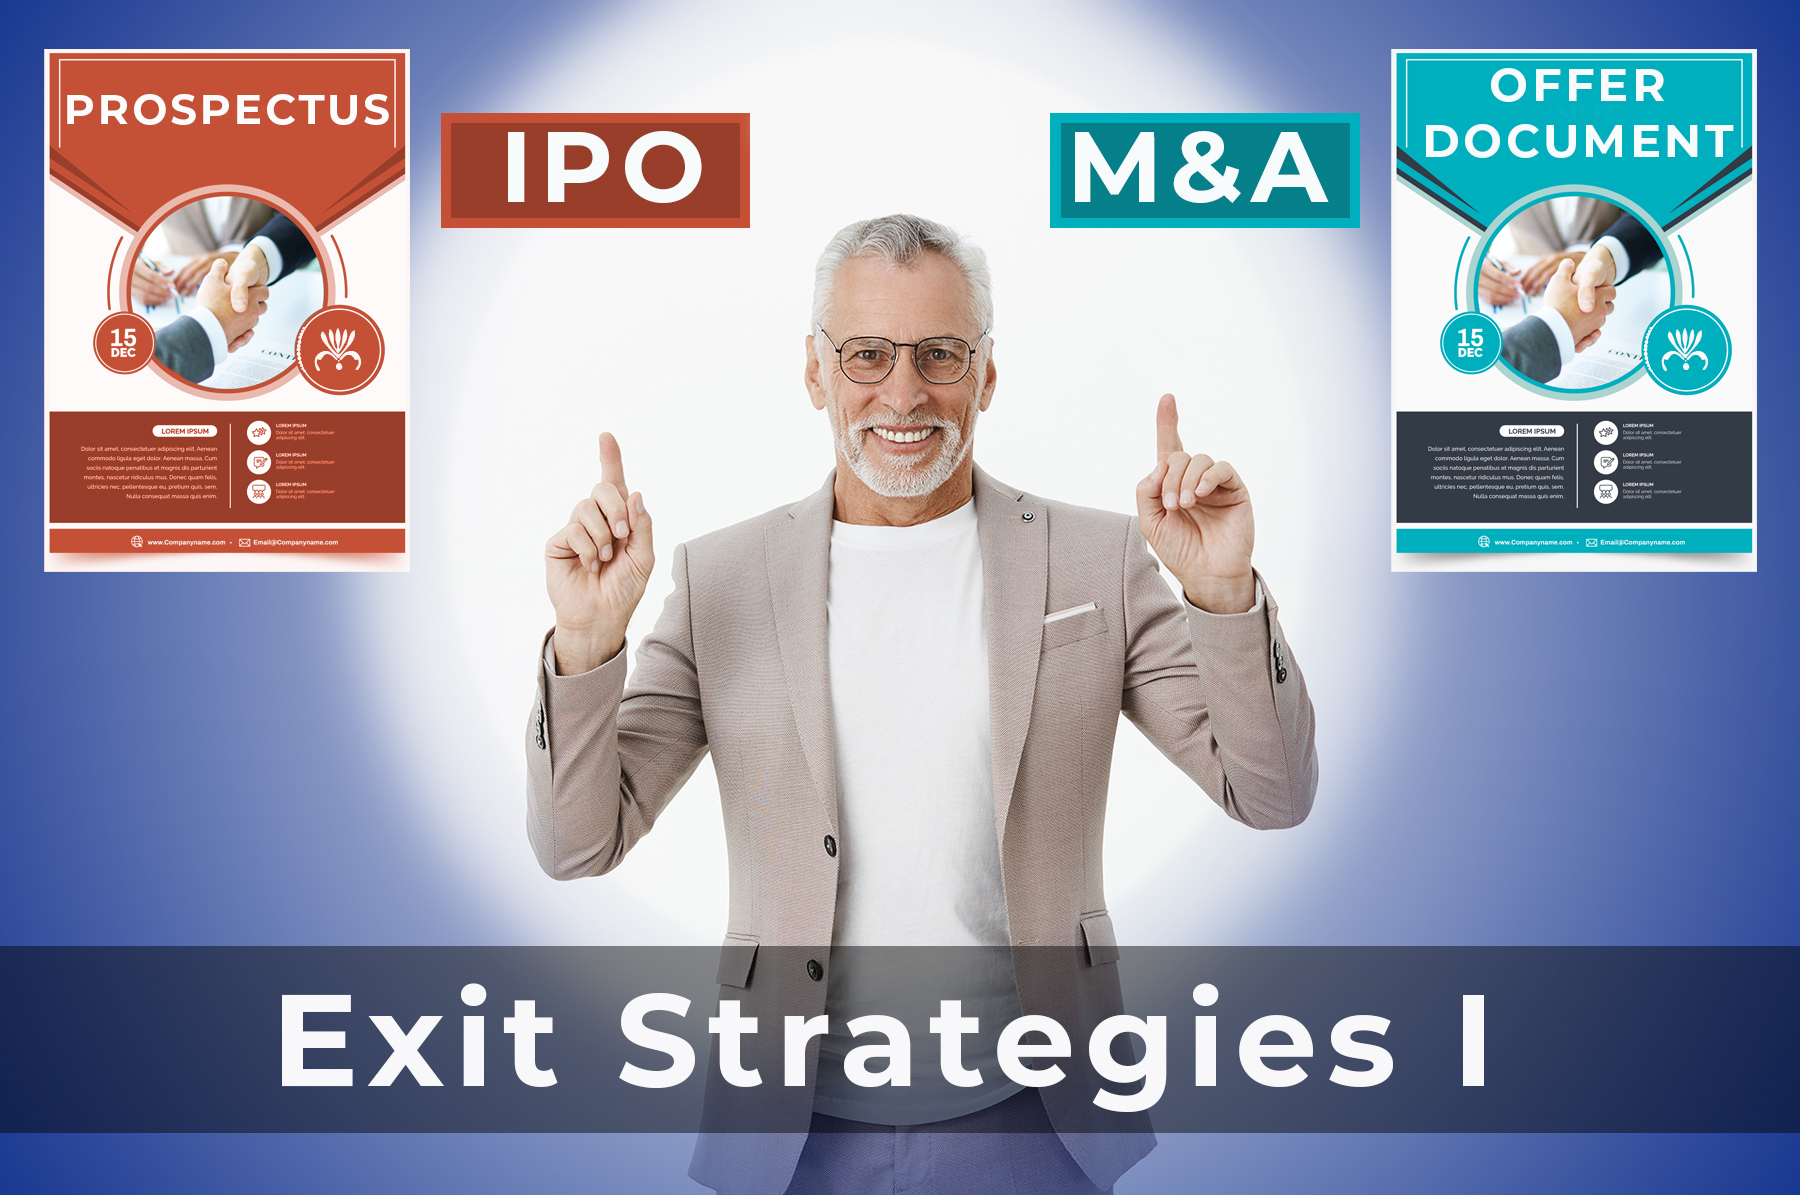 BUSINESS EXIT STRATEGIES I